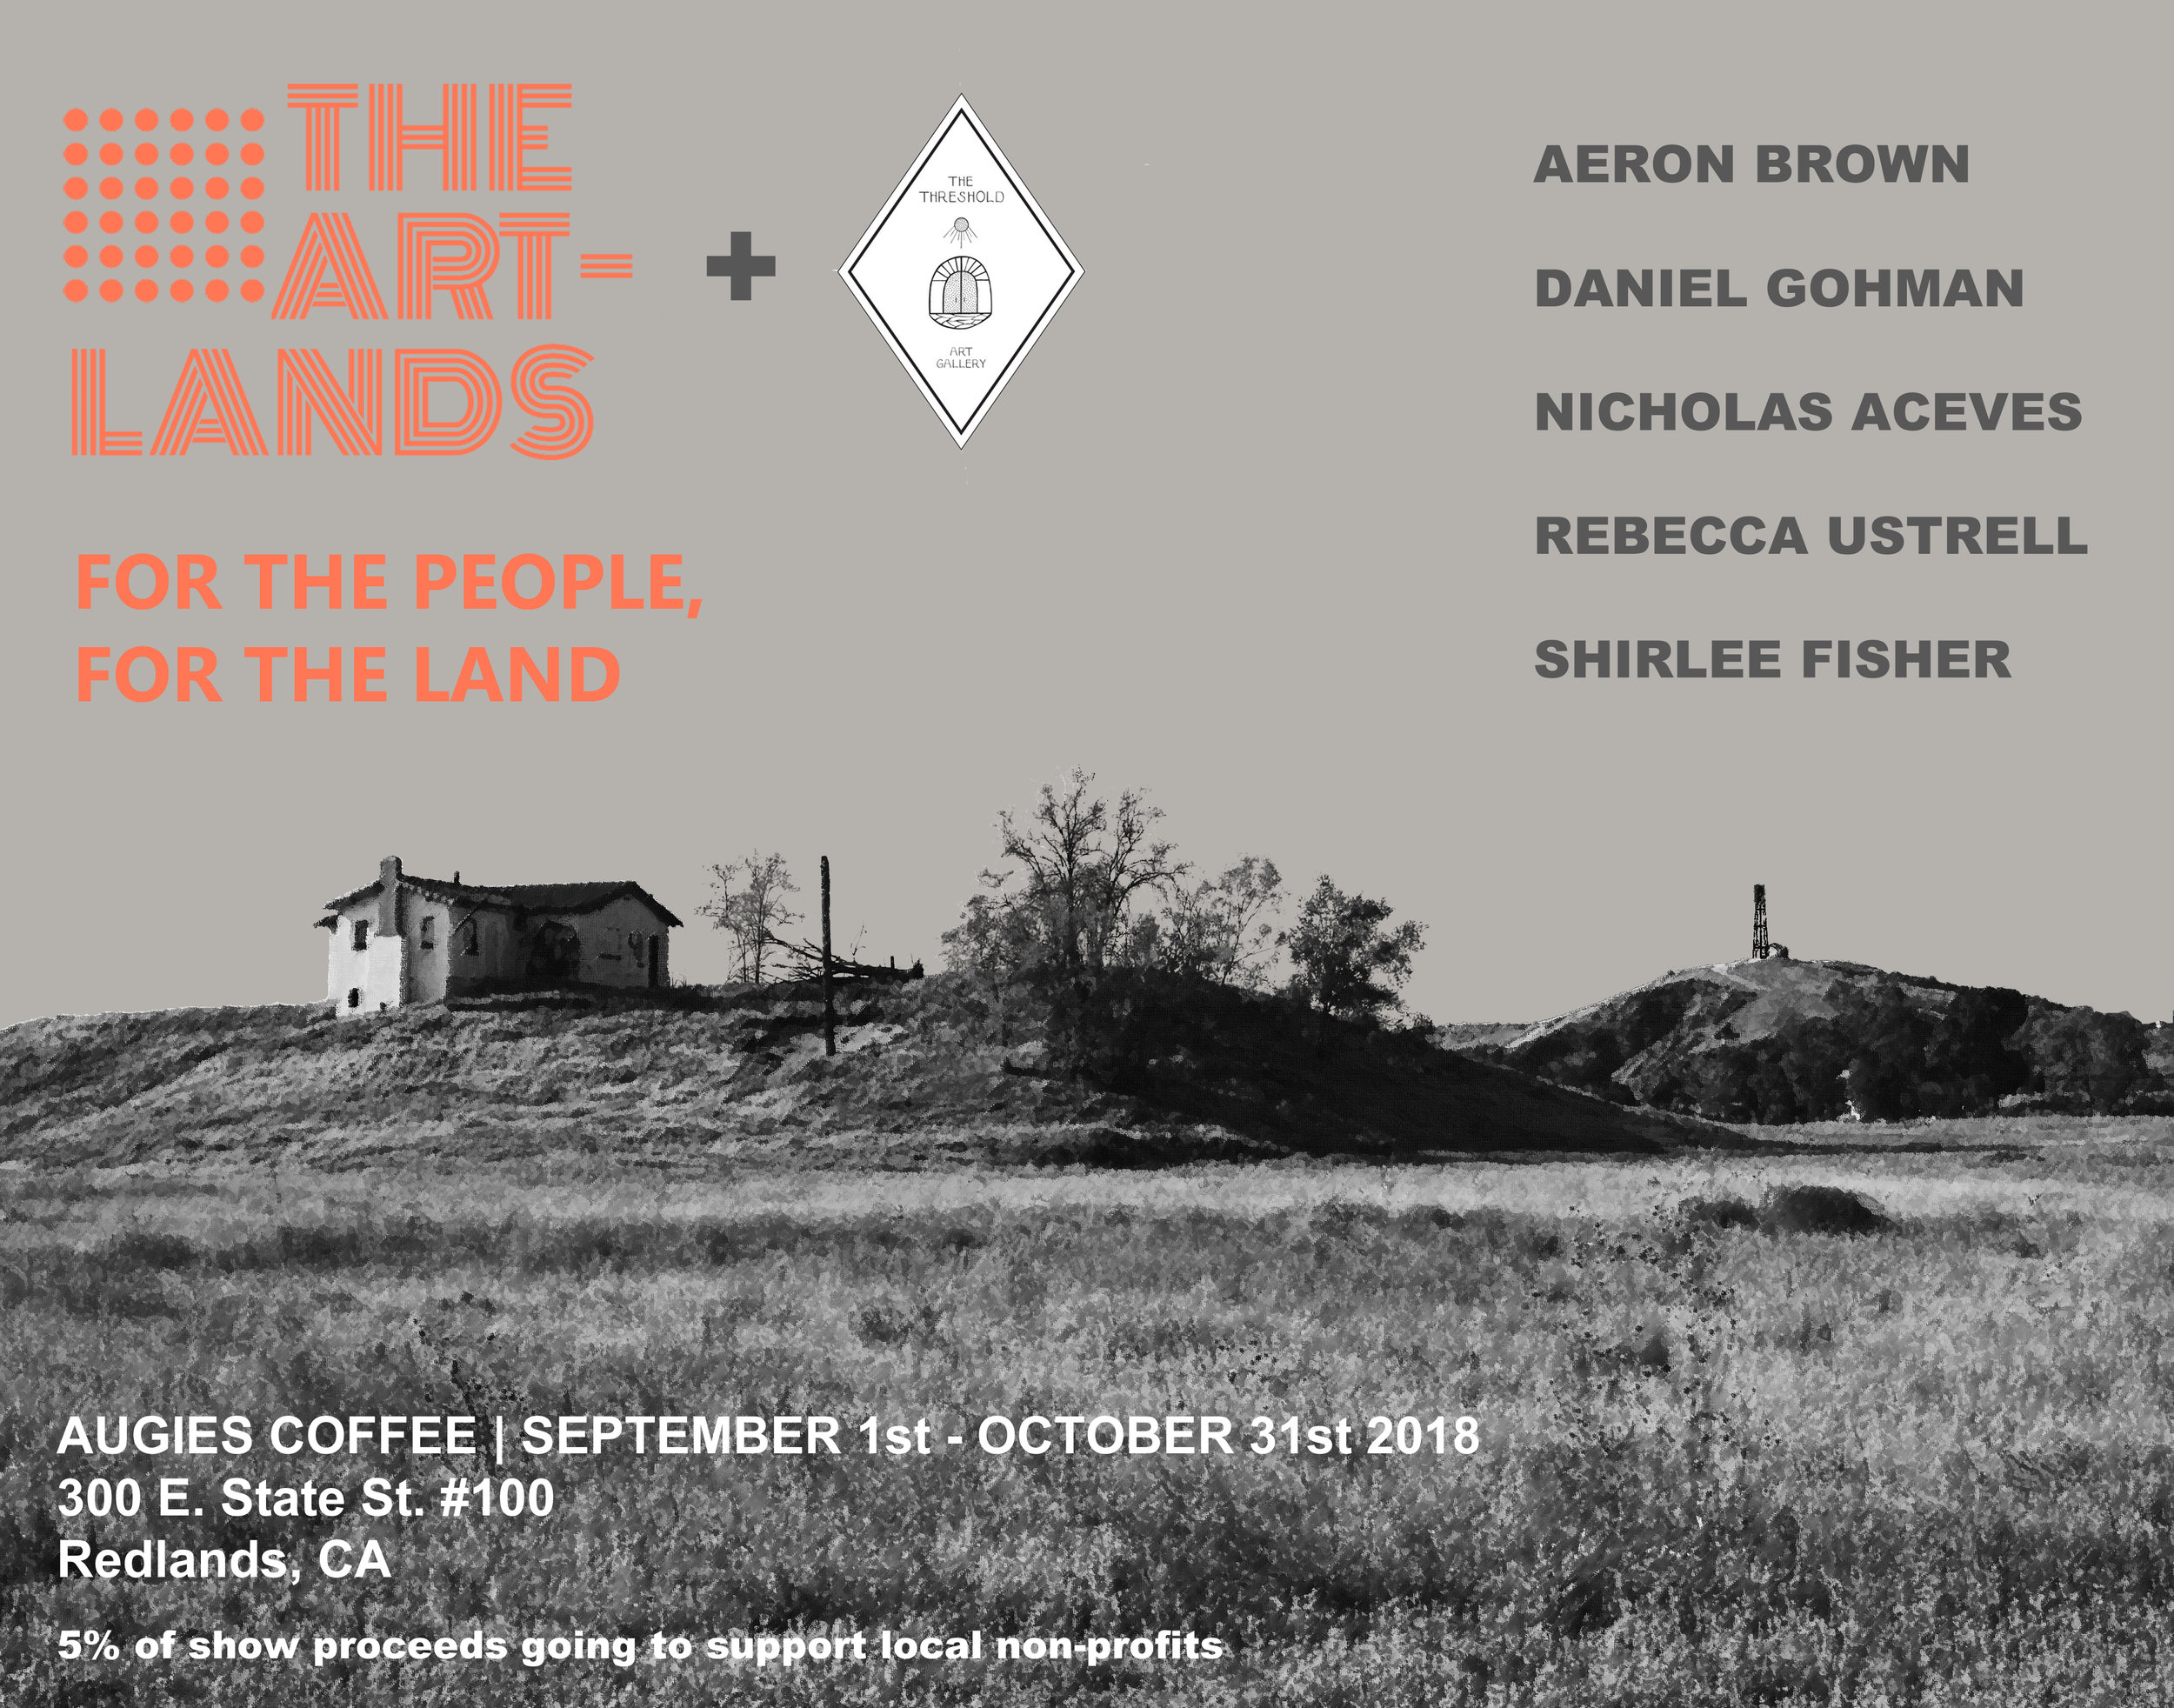 For the people, for the land - September 1 - October 31, 2018Augie's Coffee300 E. State St. Ste. 100, Redlands, CA 92373